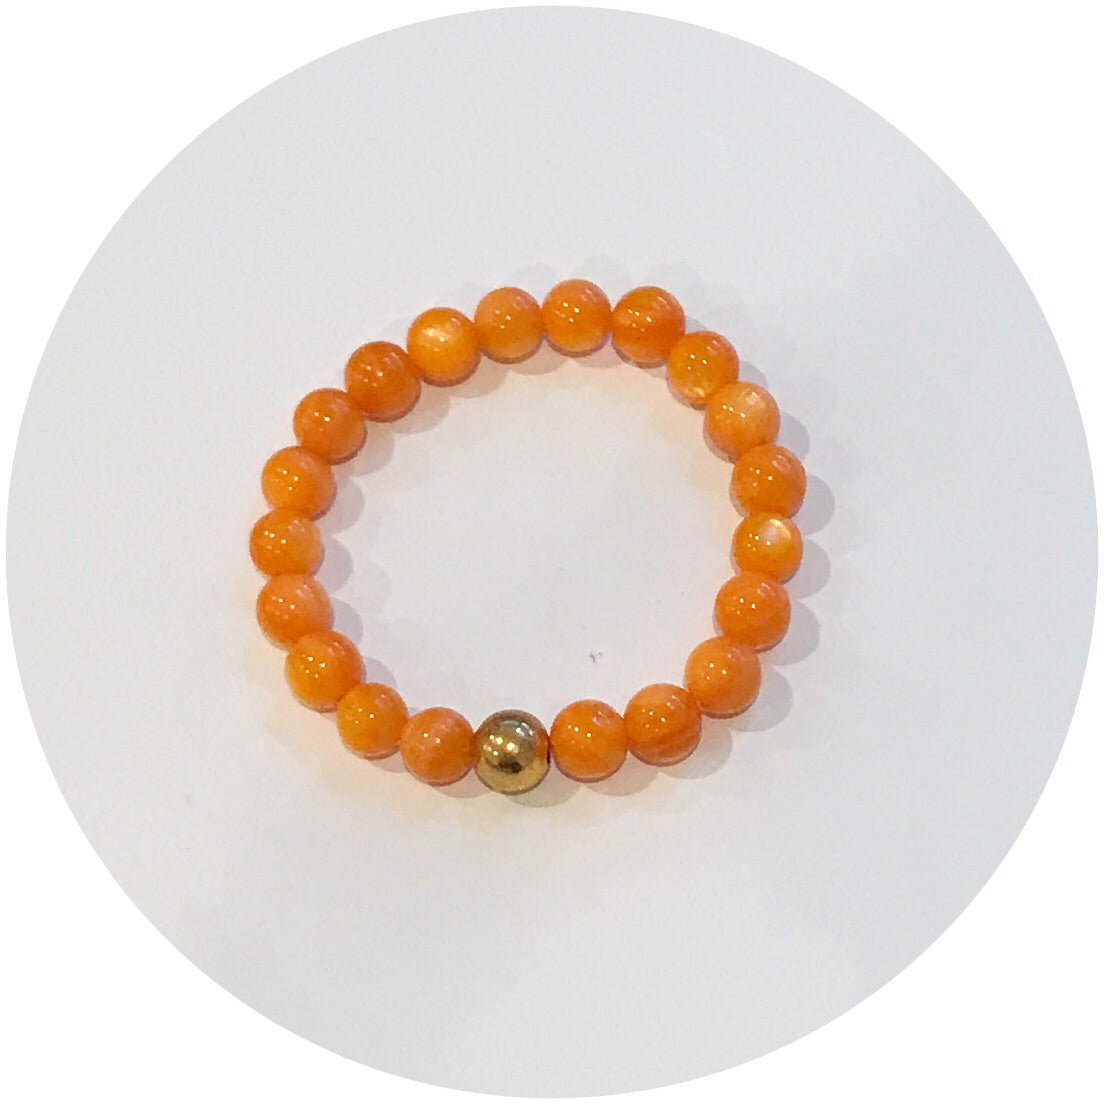 Mini Orange Pearl with Gold Accent *For NewBorns* - Oriana Lamarca LLC